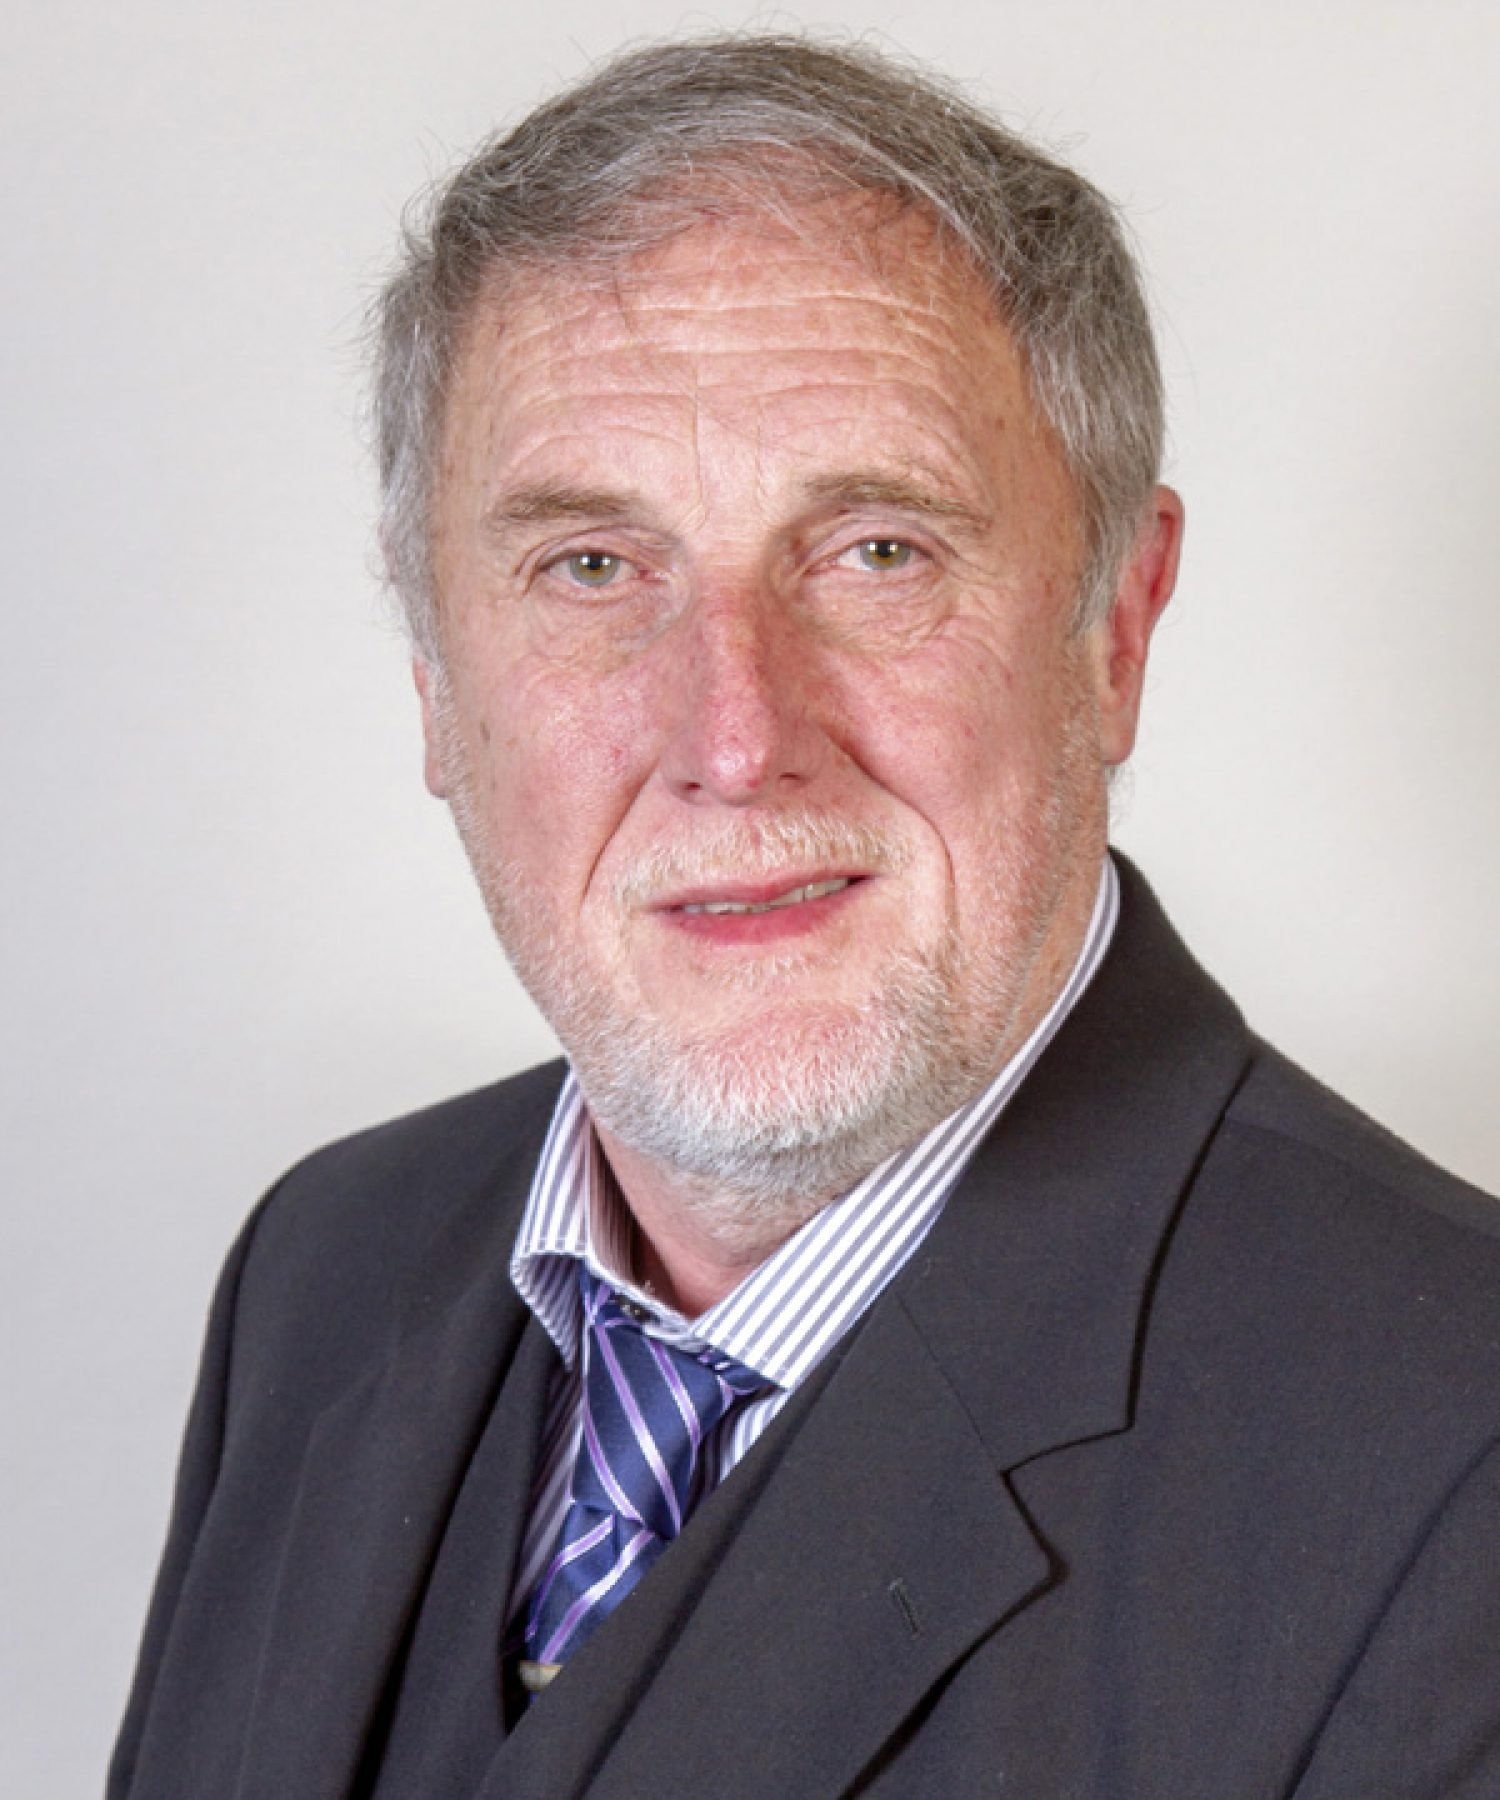 Image of Cllr Stephen Bell